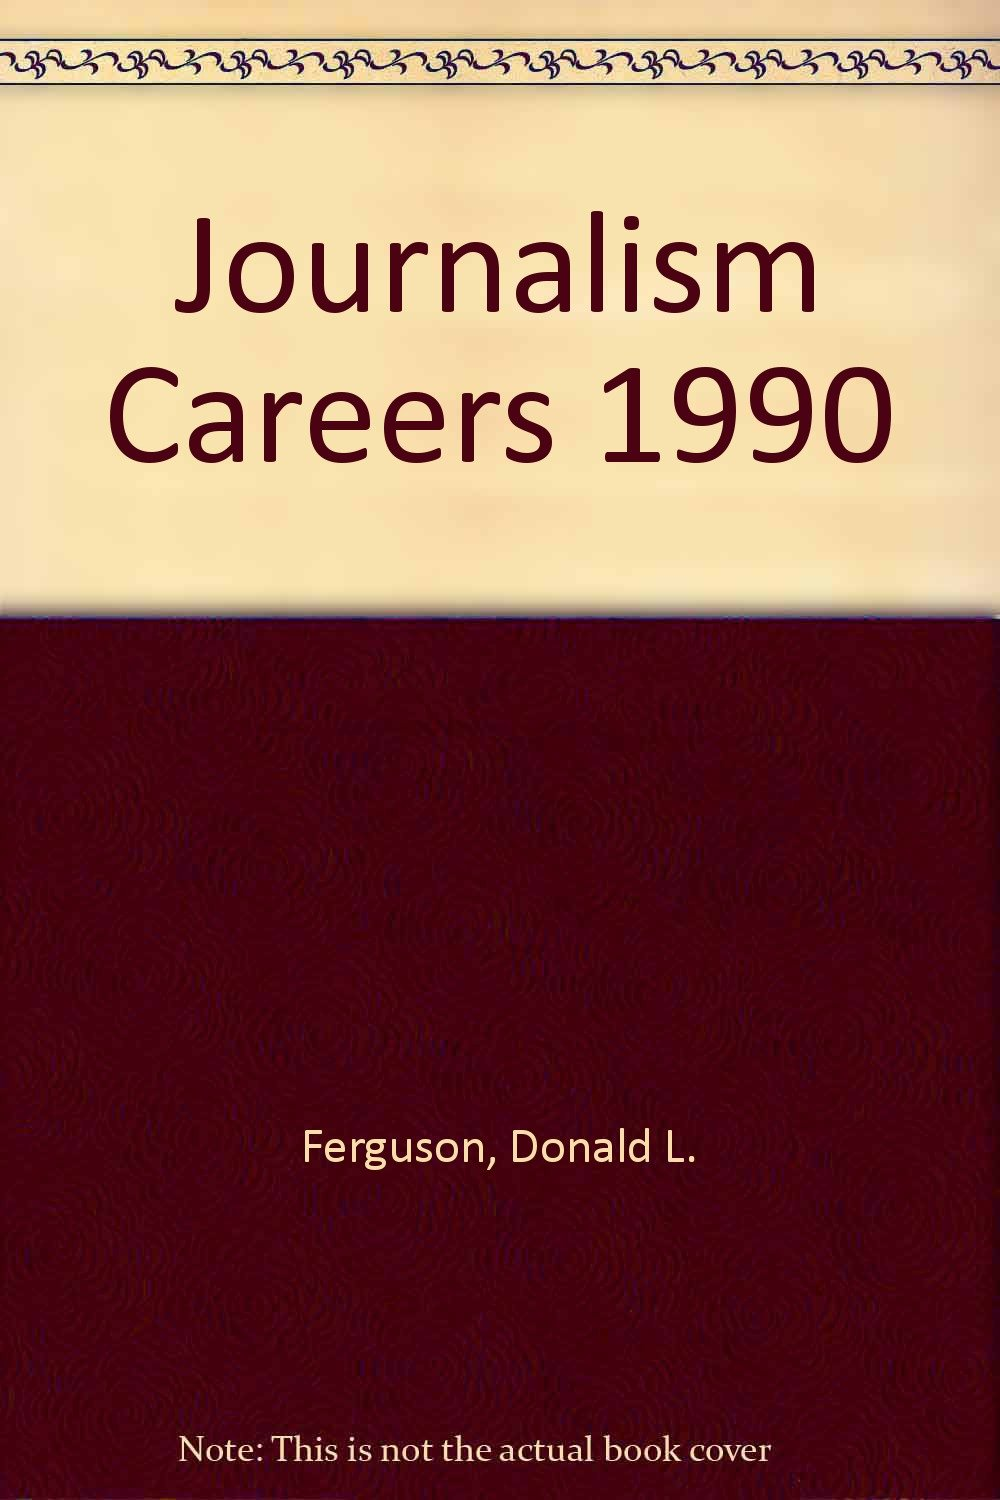 Opportunities in journalism careers book written by Morley Safer